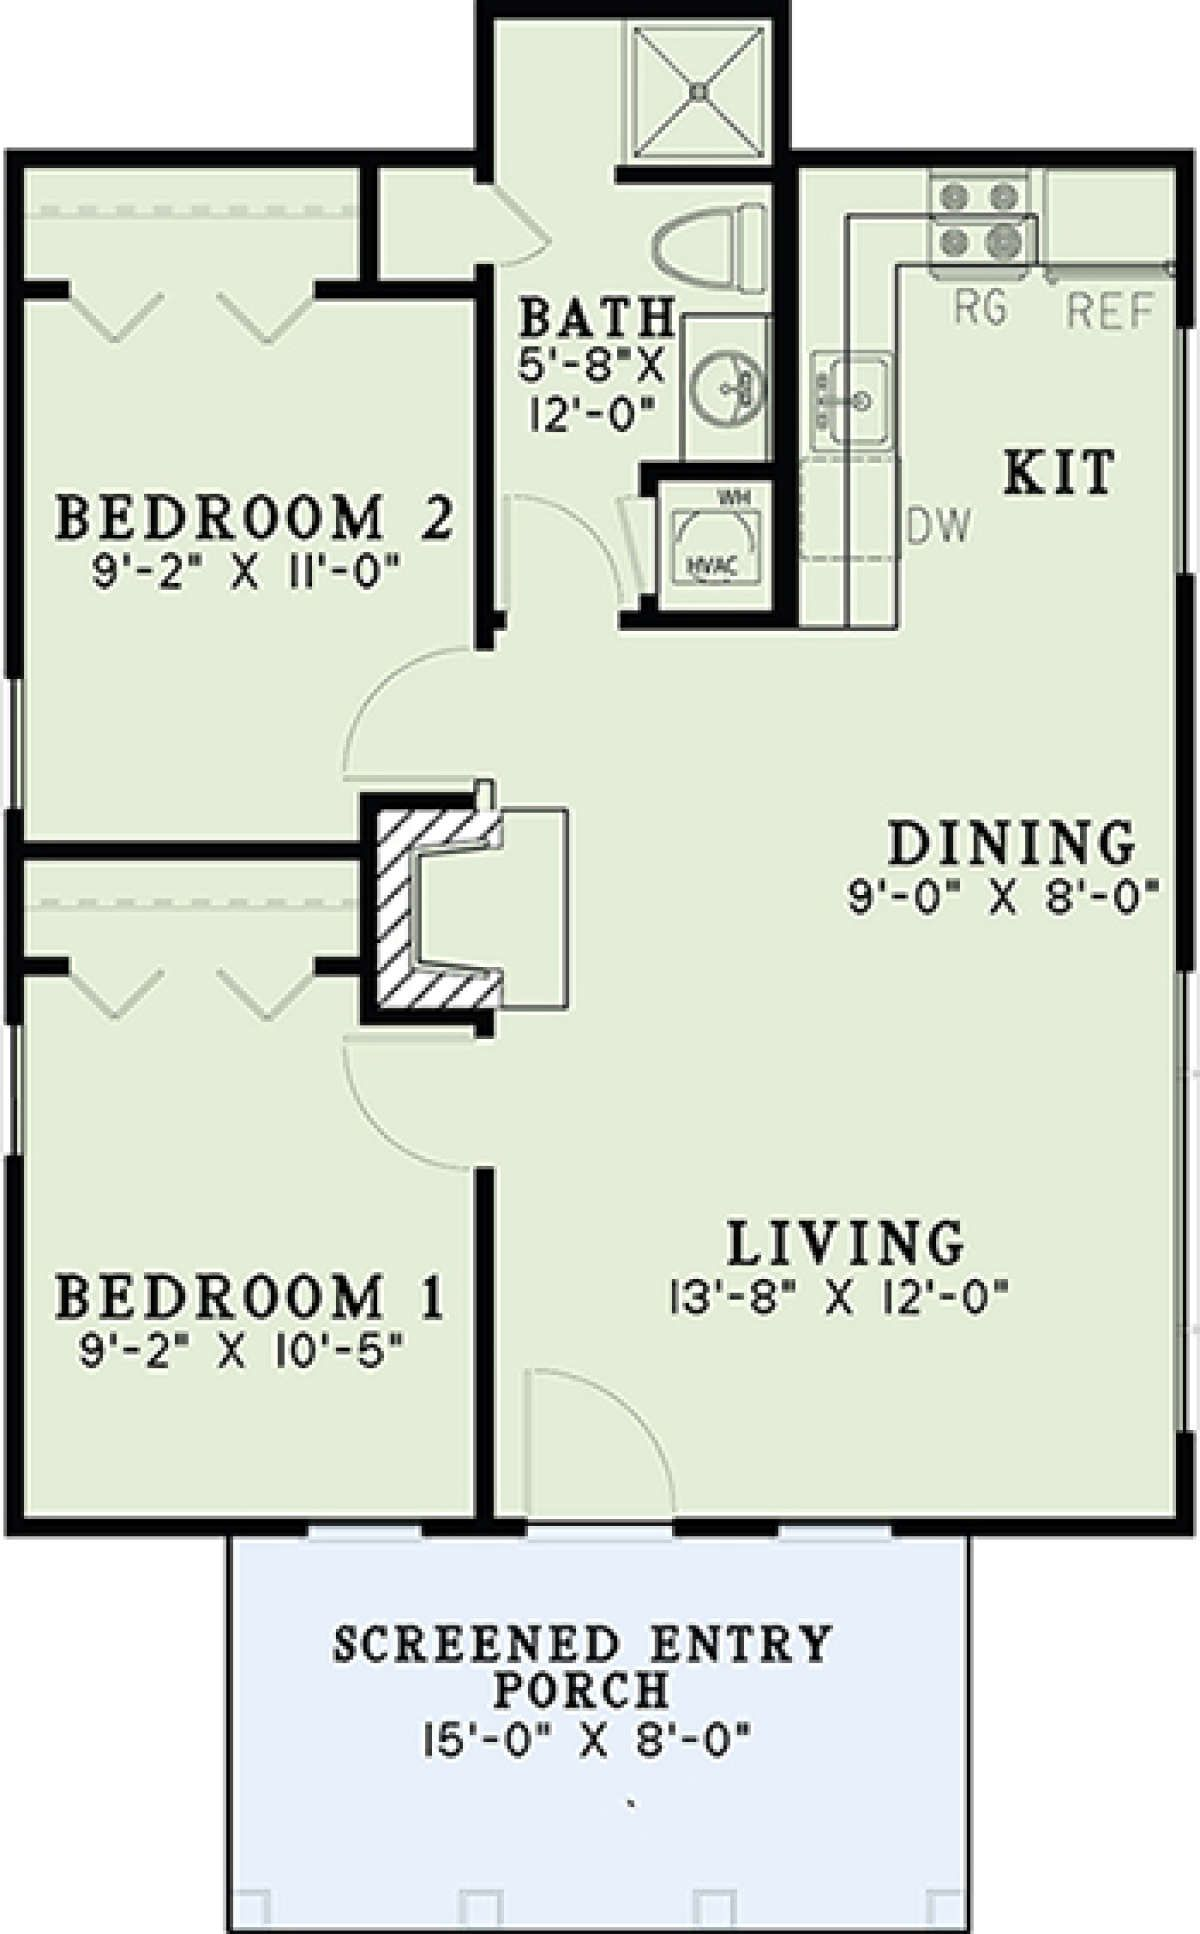 Average Jack And Jill Bathroom Size Jack And Jill Bathroom Bathroom Floor Plans Bedroom Floor Plans